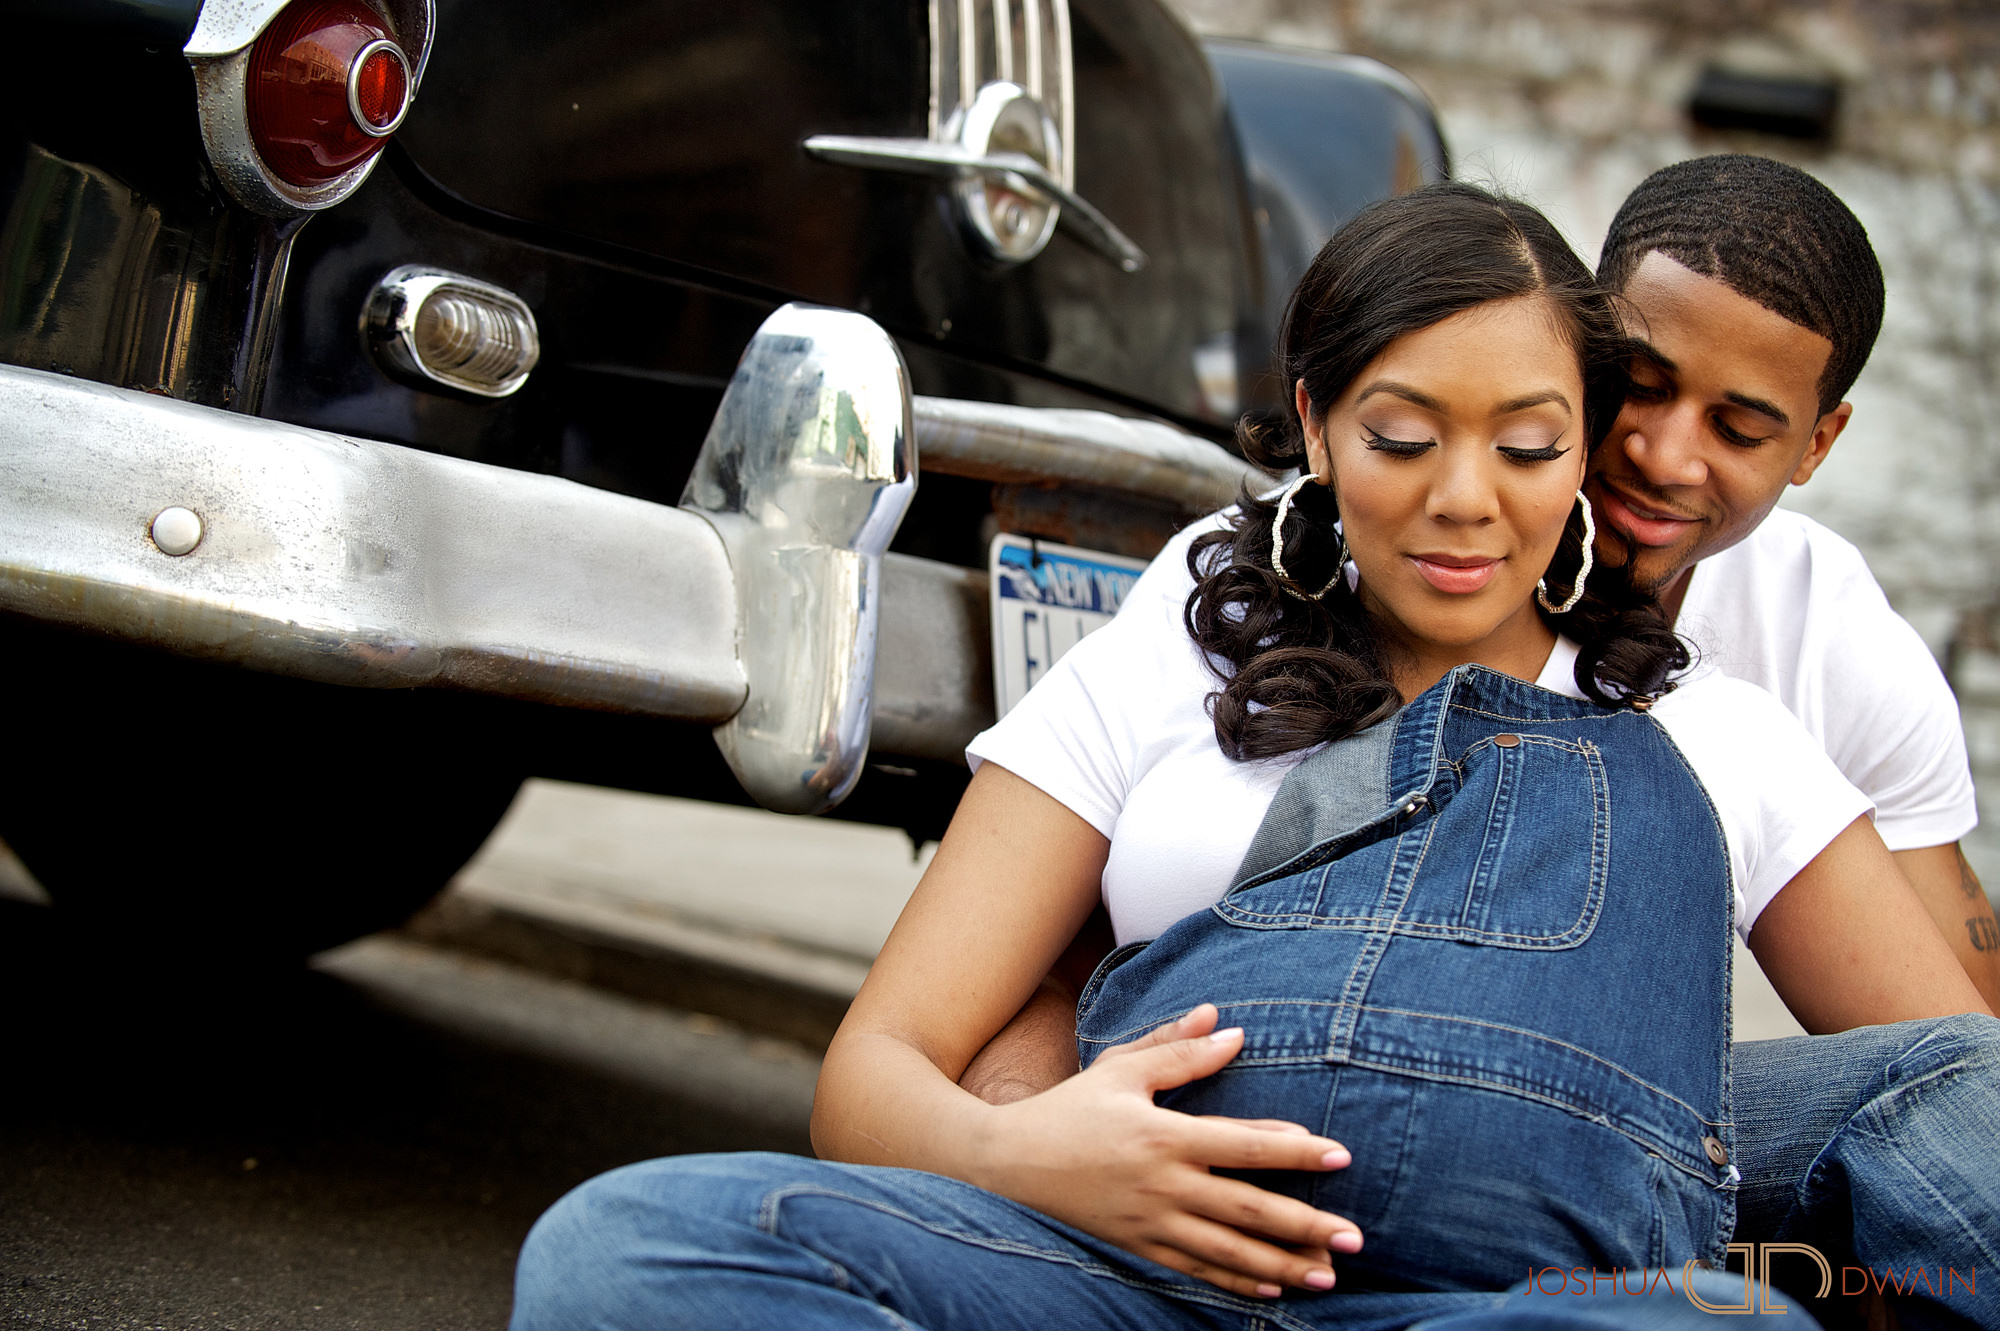 khadeen-ellis-009-new-york-city-maternity-photographer-joshua-dwain-2011-03-18_KD_072